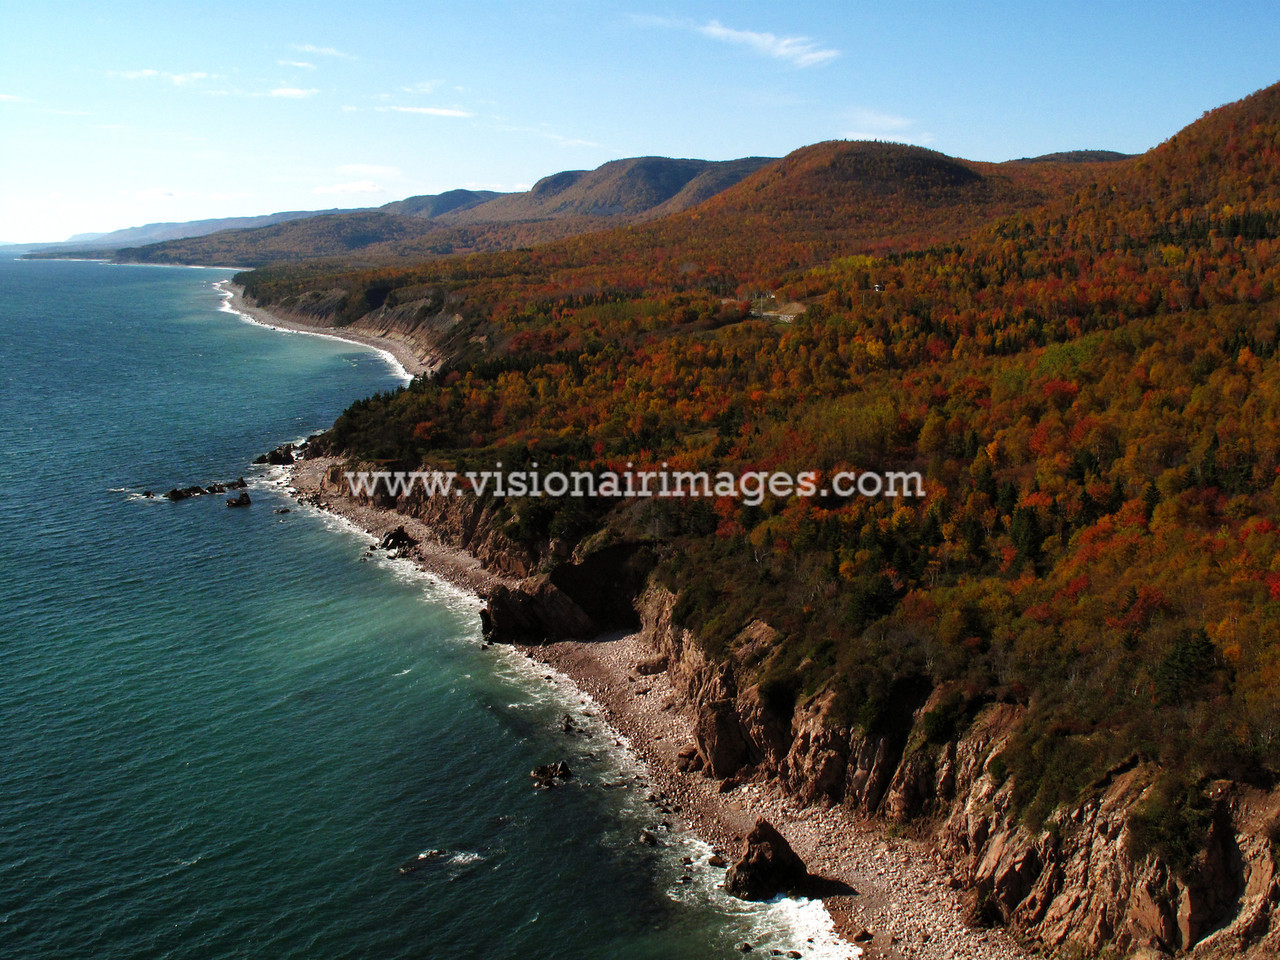 Cape Smokey, Coastal Beaches, Cliffs, Cape Breton Island, Nova Scotia, Canada